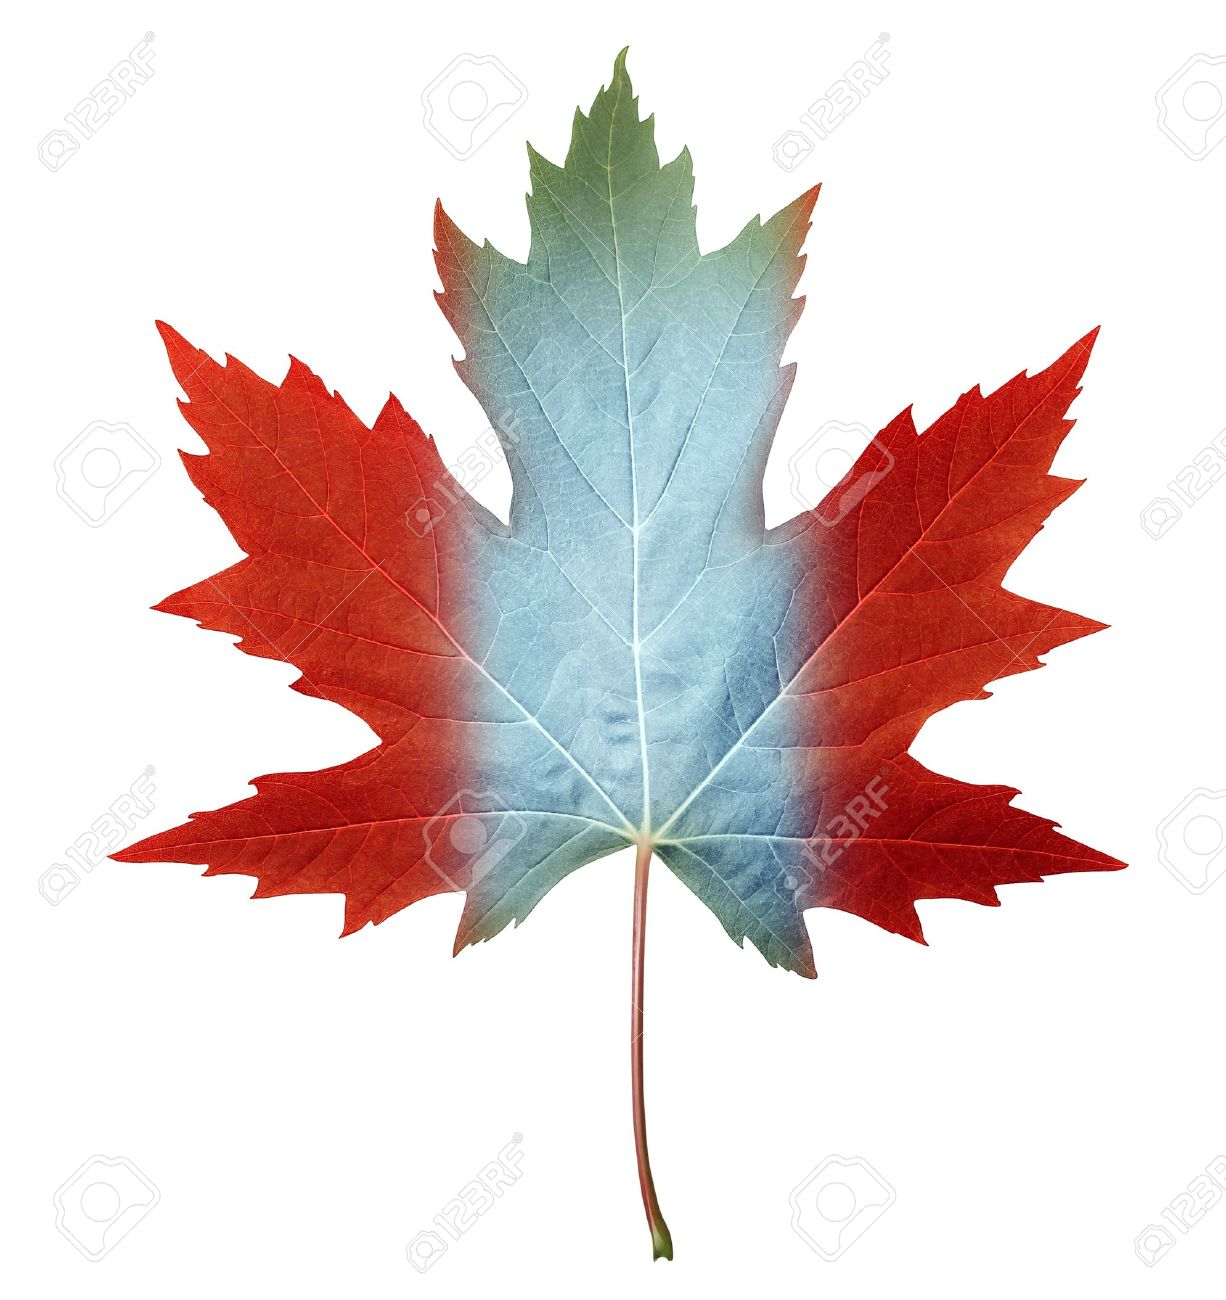 Canada Maple Leaf With The Canadian Flag Colors Painted On The Fall